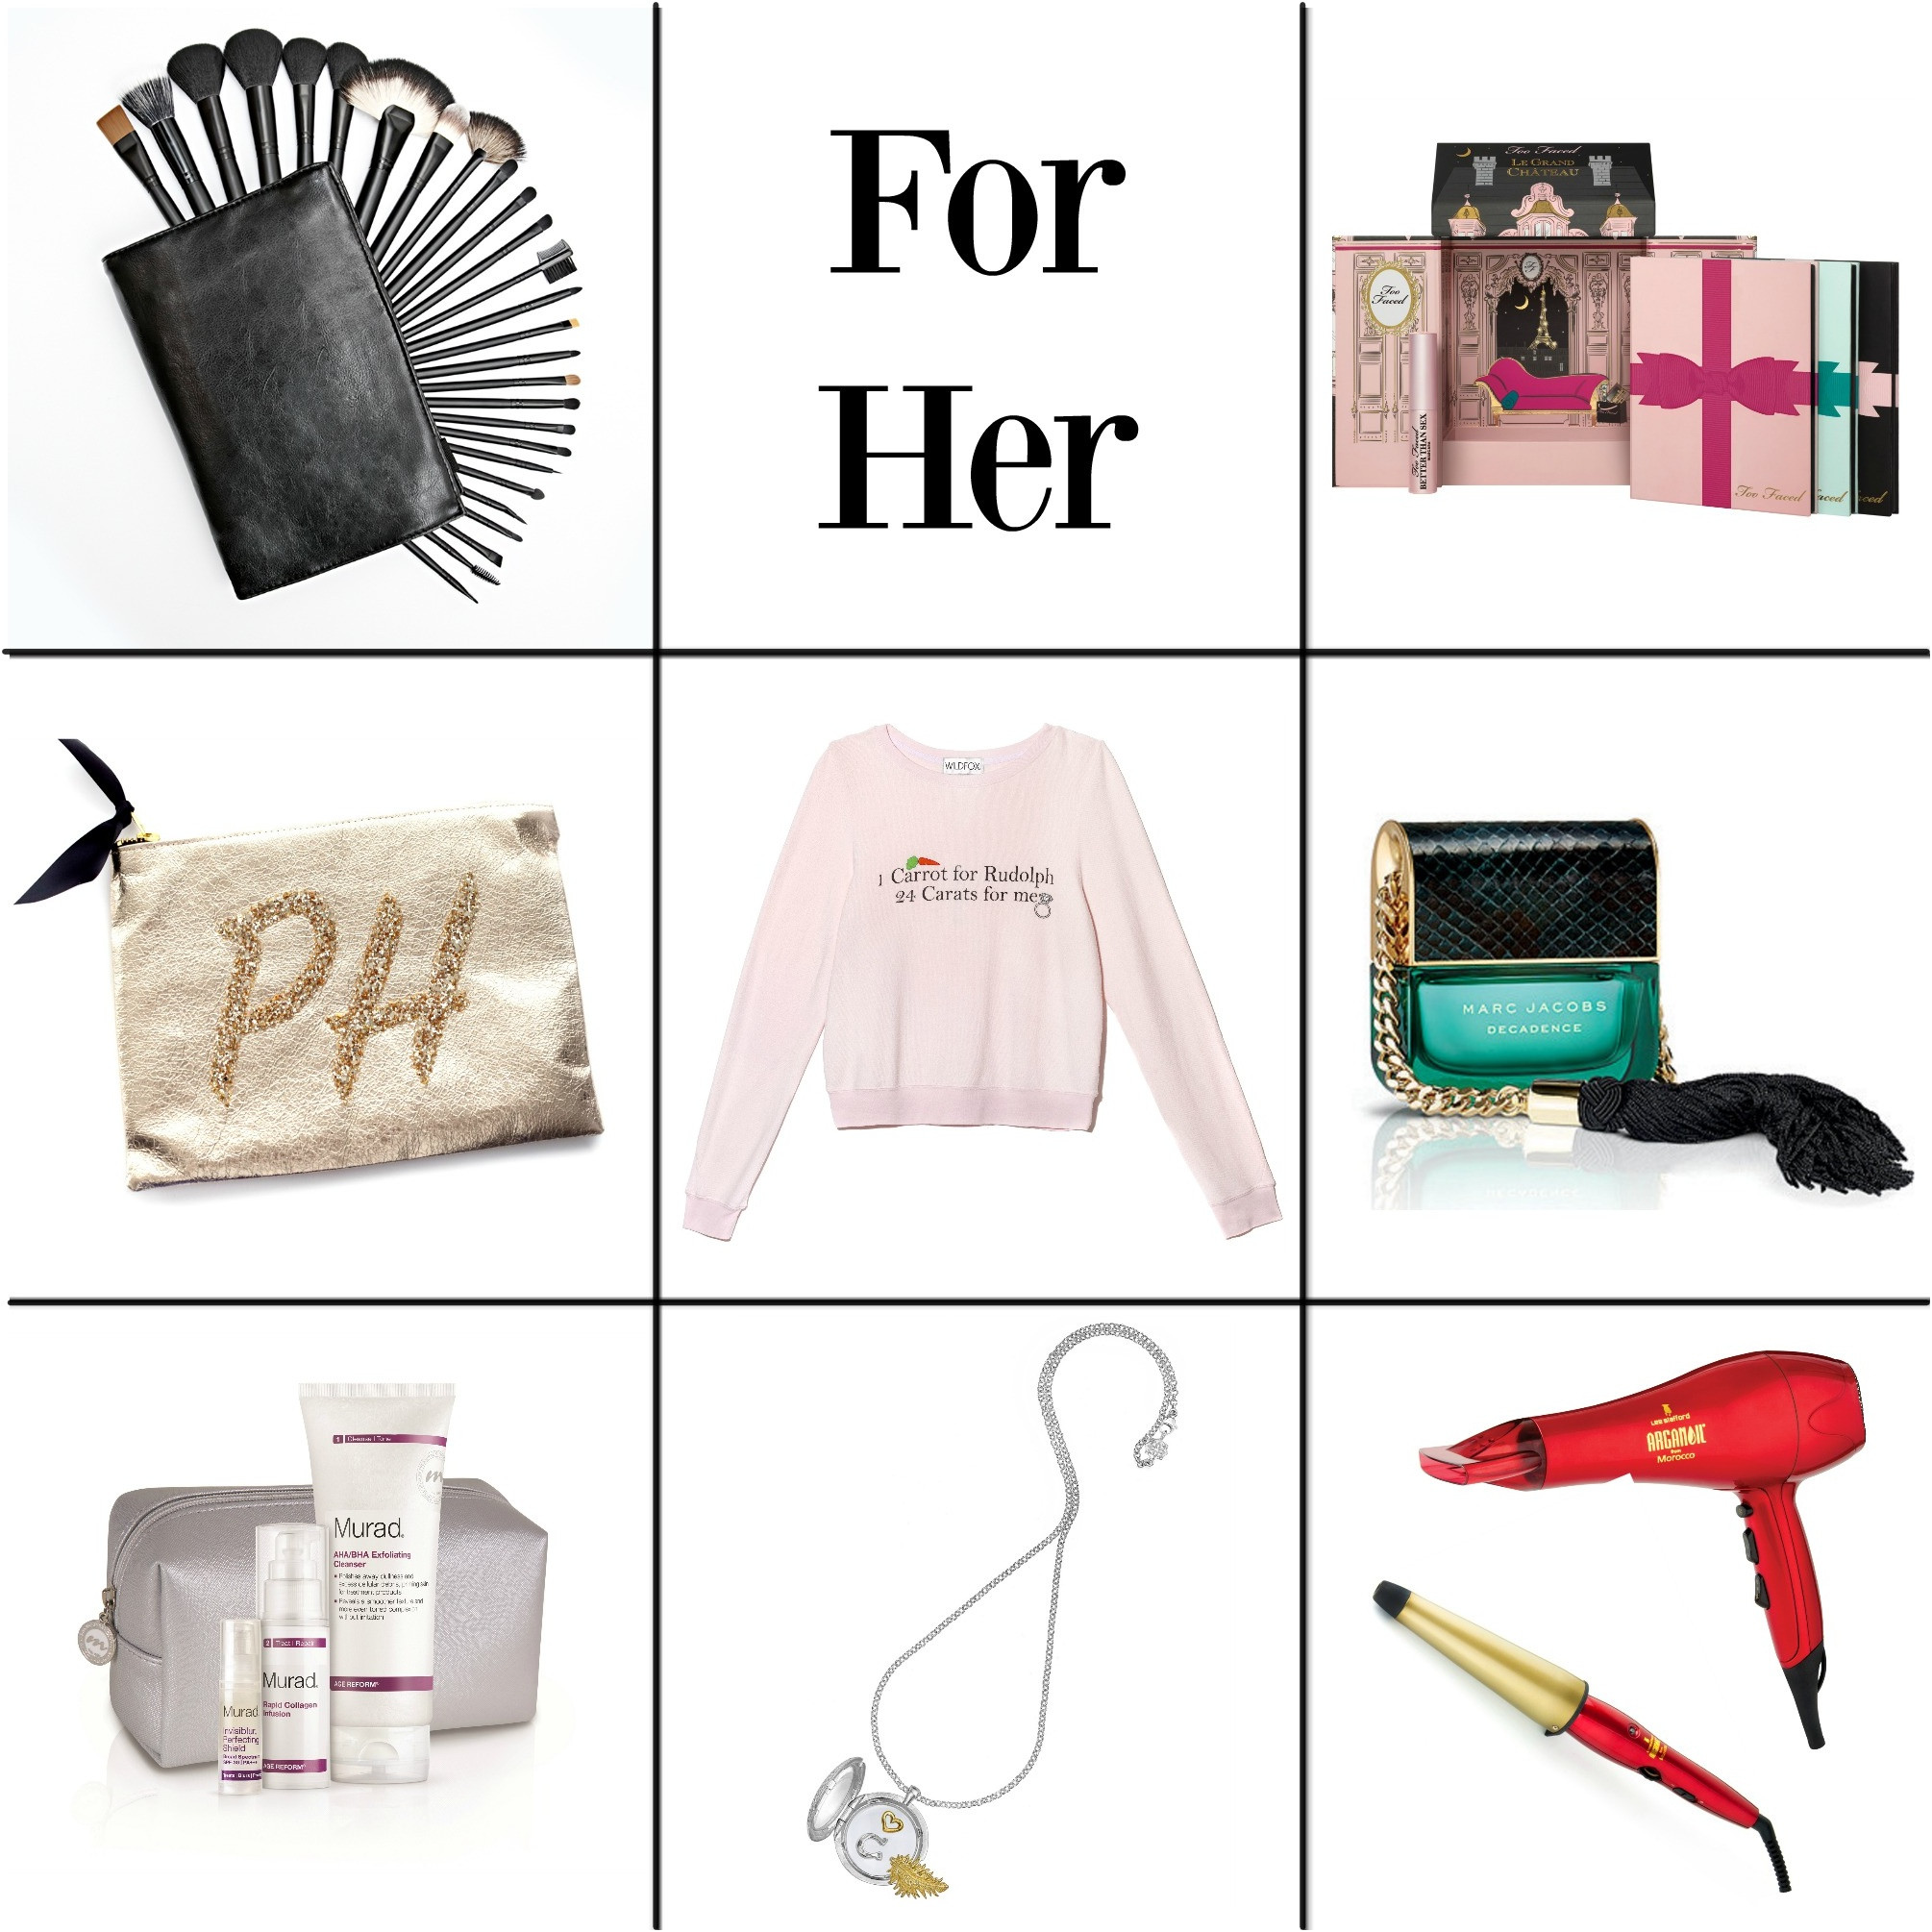 Best ideas about Gift For Her Ideas . Save or Pin Gift Ideas For Her Christmas 2015 Now.